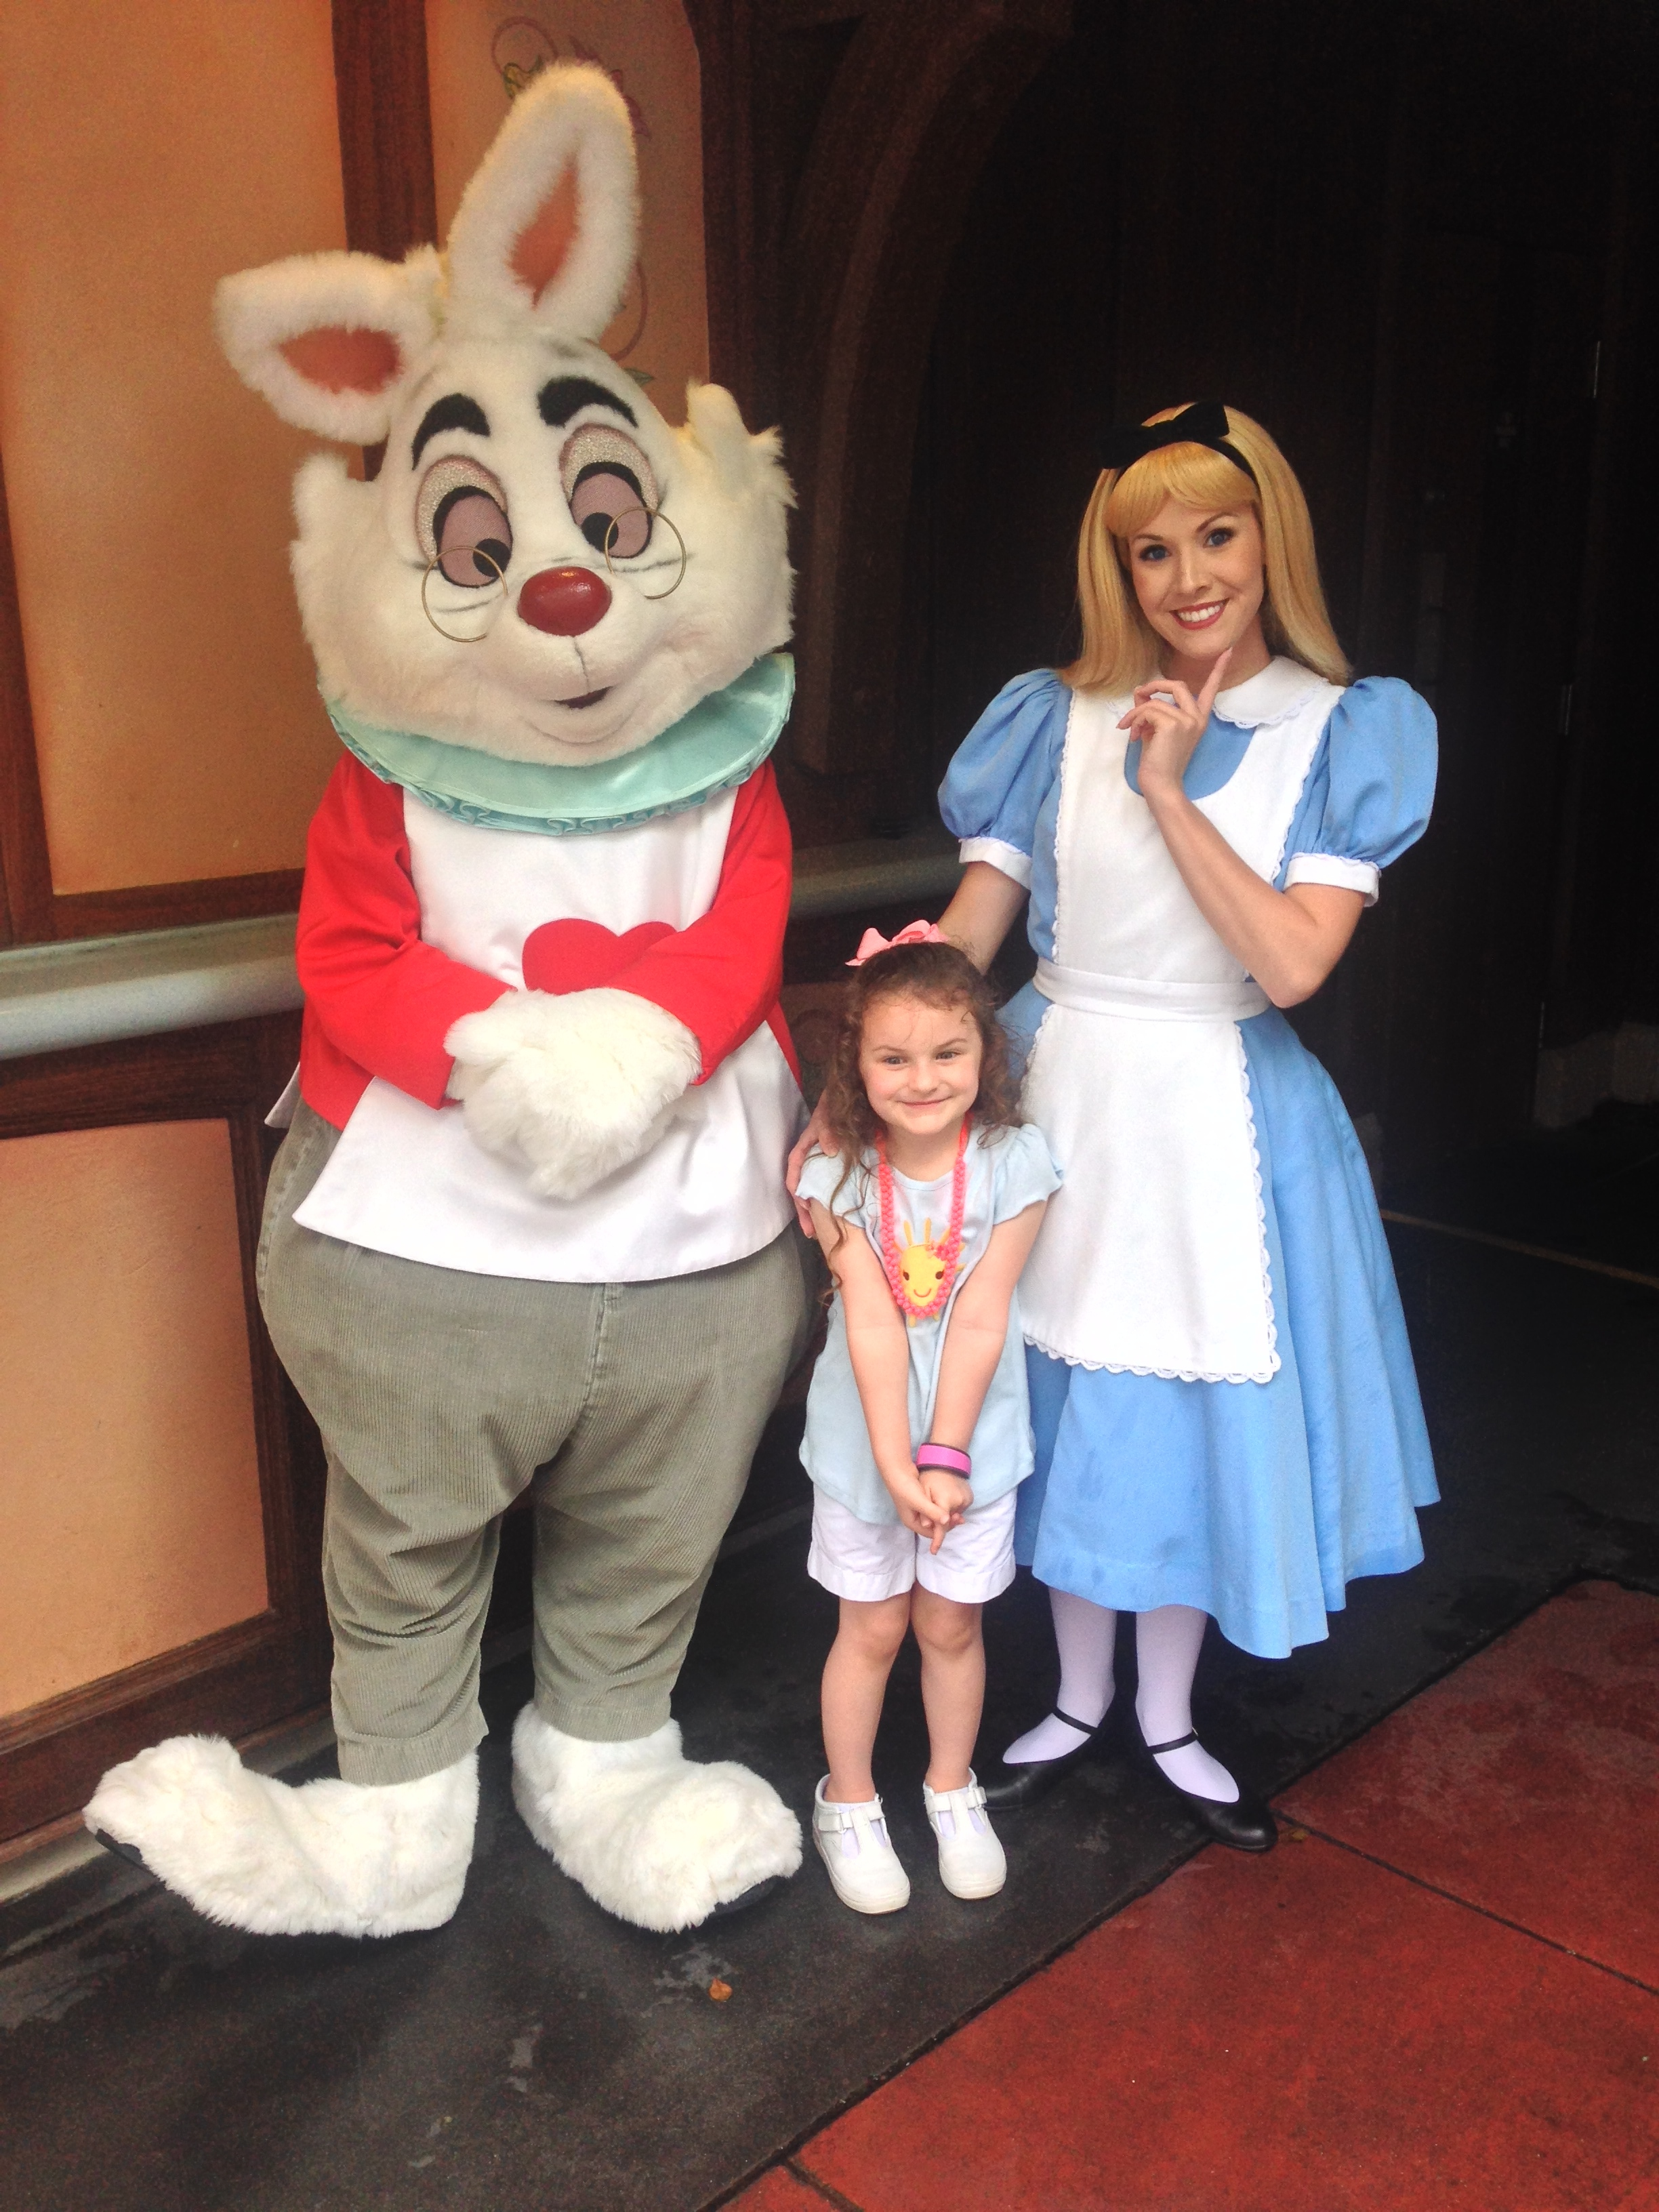 Meeting Alice in Wonderland and the White Rabbit